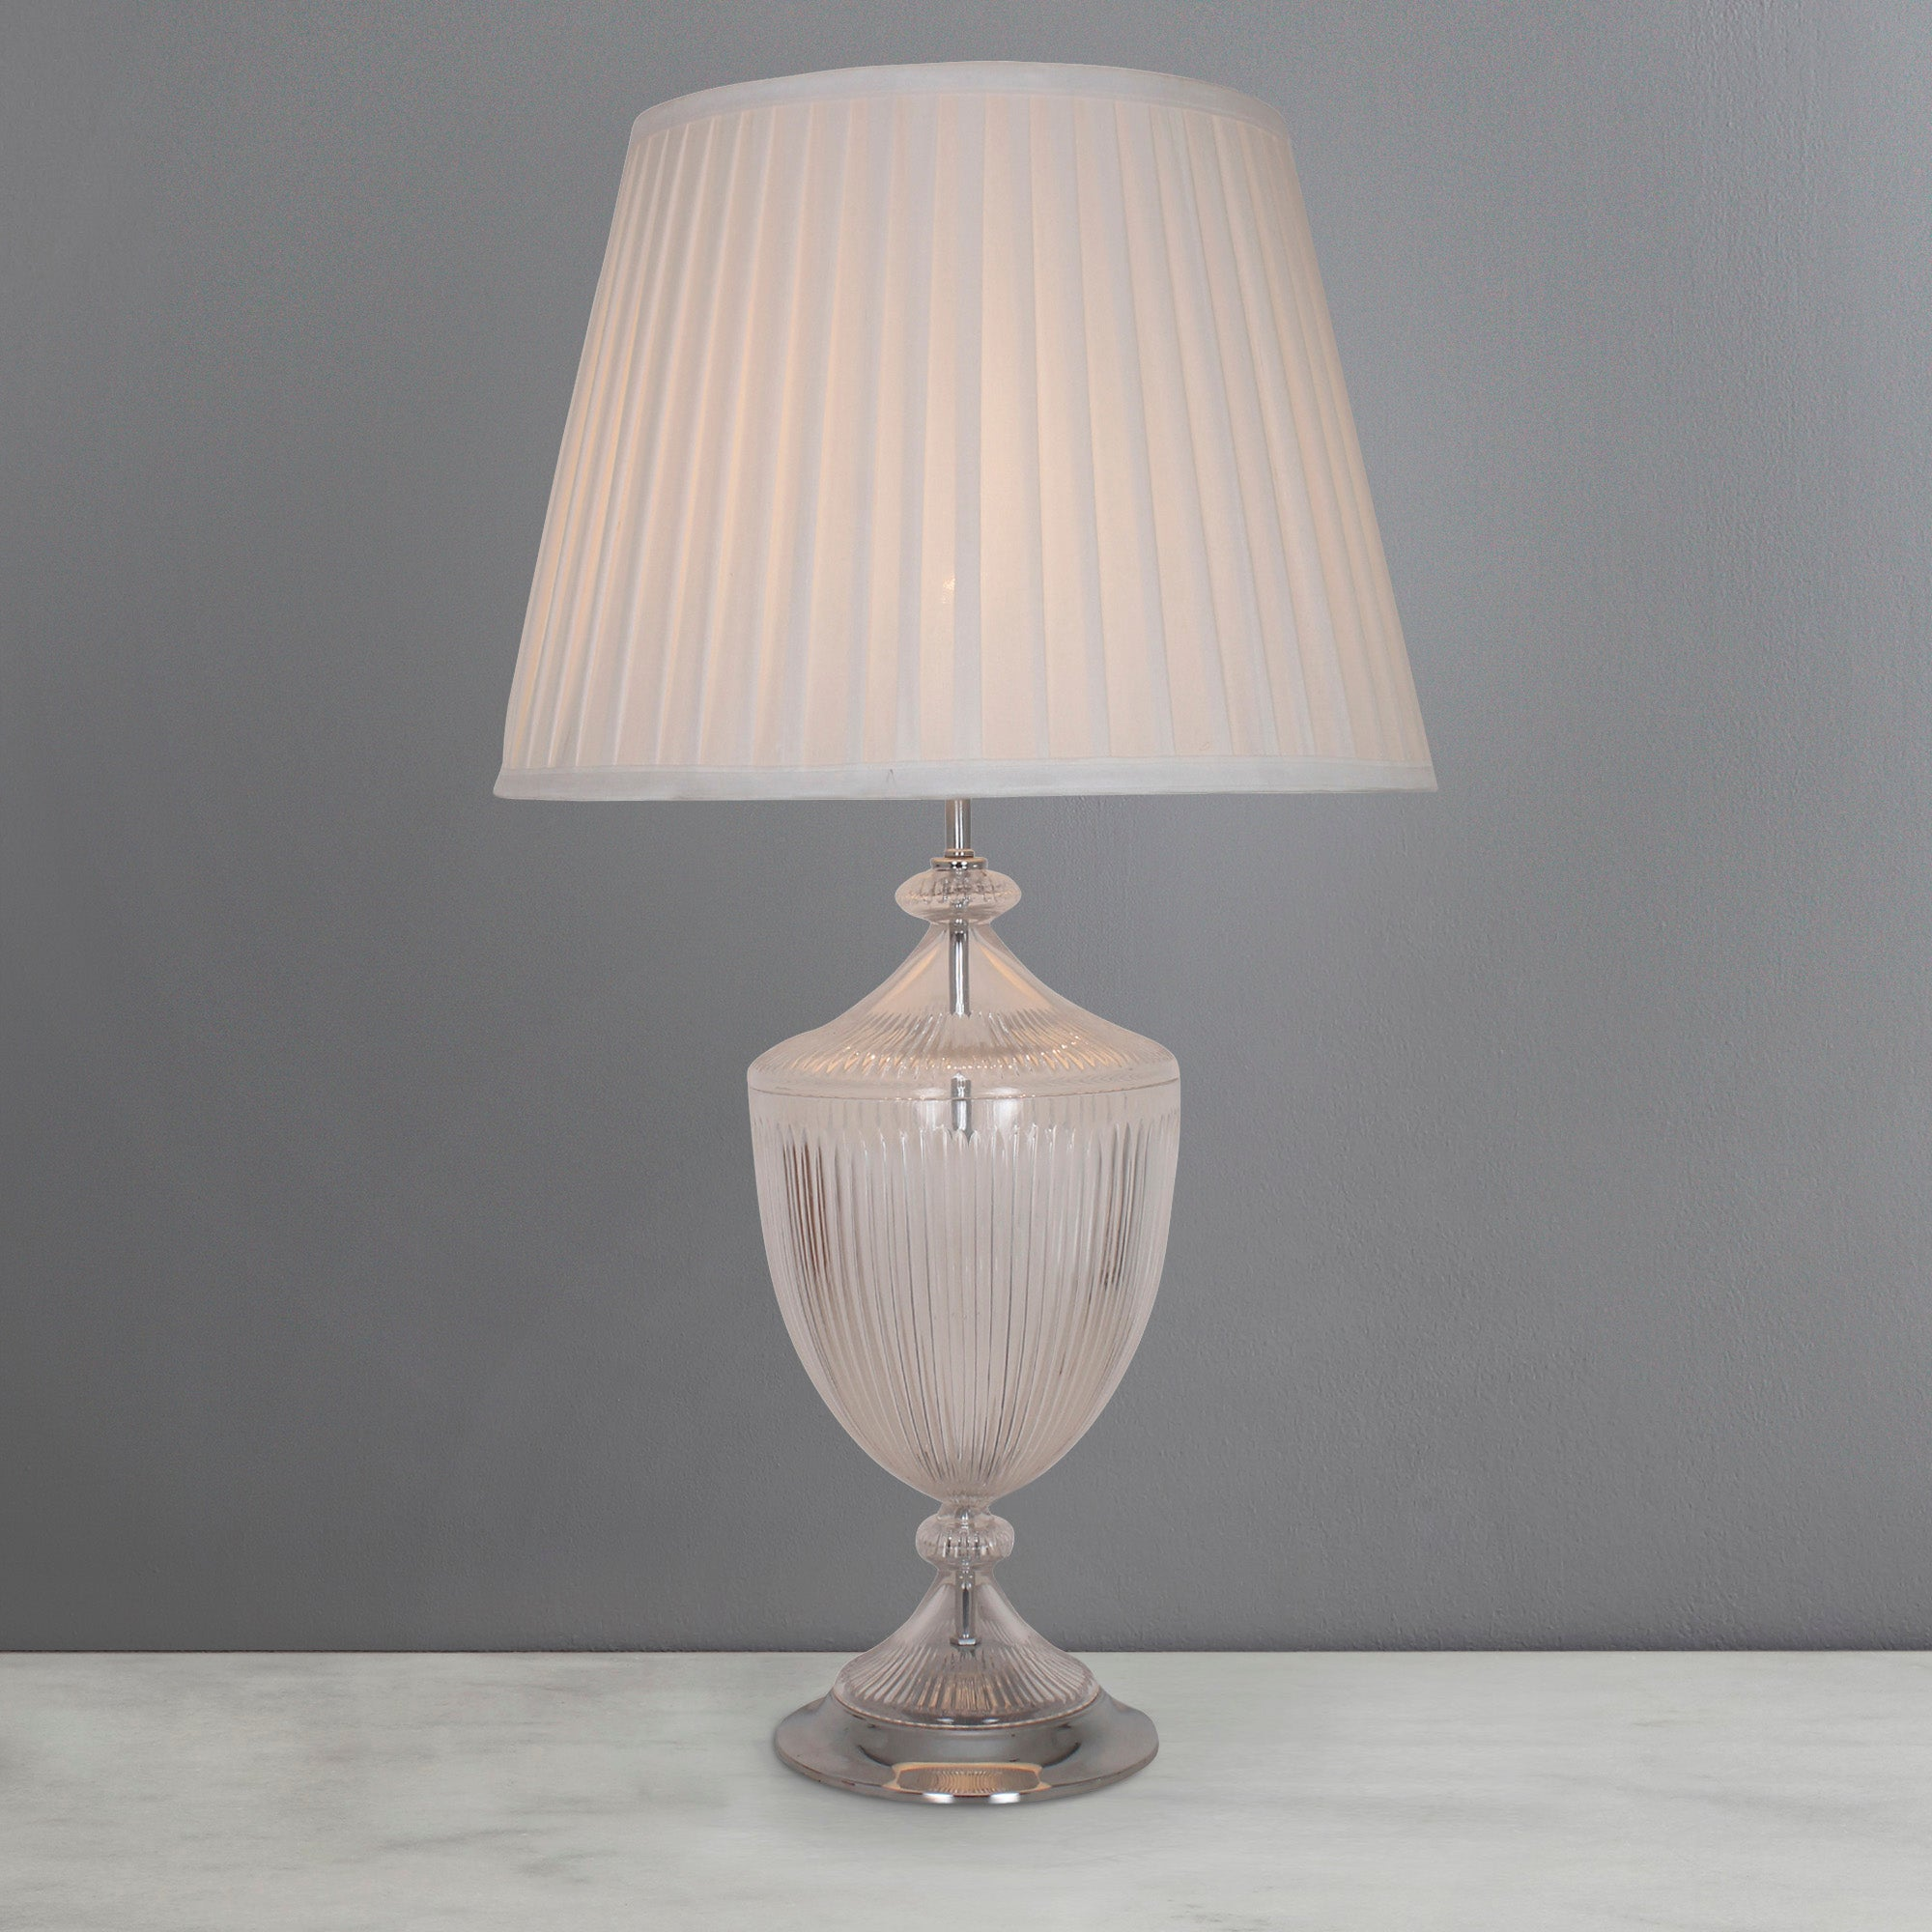 Photo of Dorma alderley elegnce ribbed glass table lamp clear